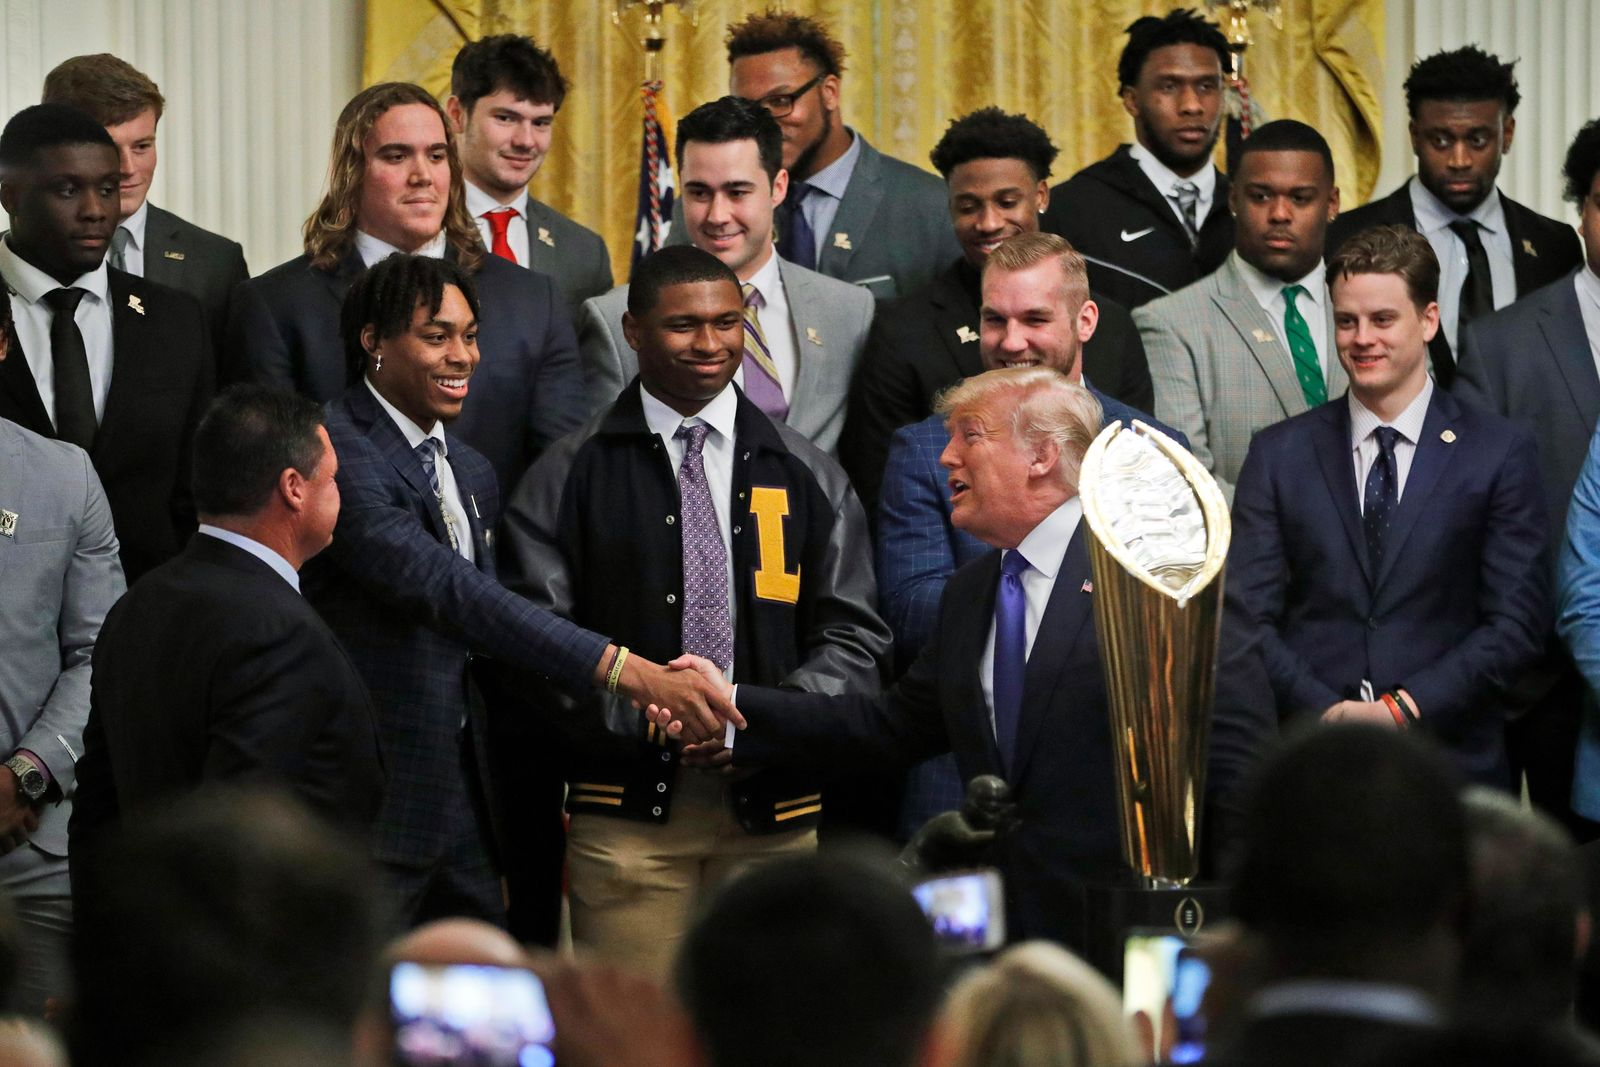 President Donald Trump, right, shakes the hand of LSU wide receiver Justin Jefferson, as he honors the members of the Louisiana State University NCAA college championship football team in the East Room at the White House, Friday, Jan. 17, 2020, in Washington. (AP Photo/Steve Helber)